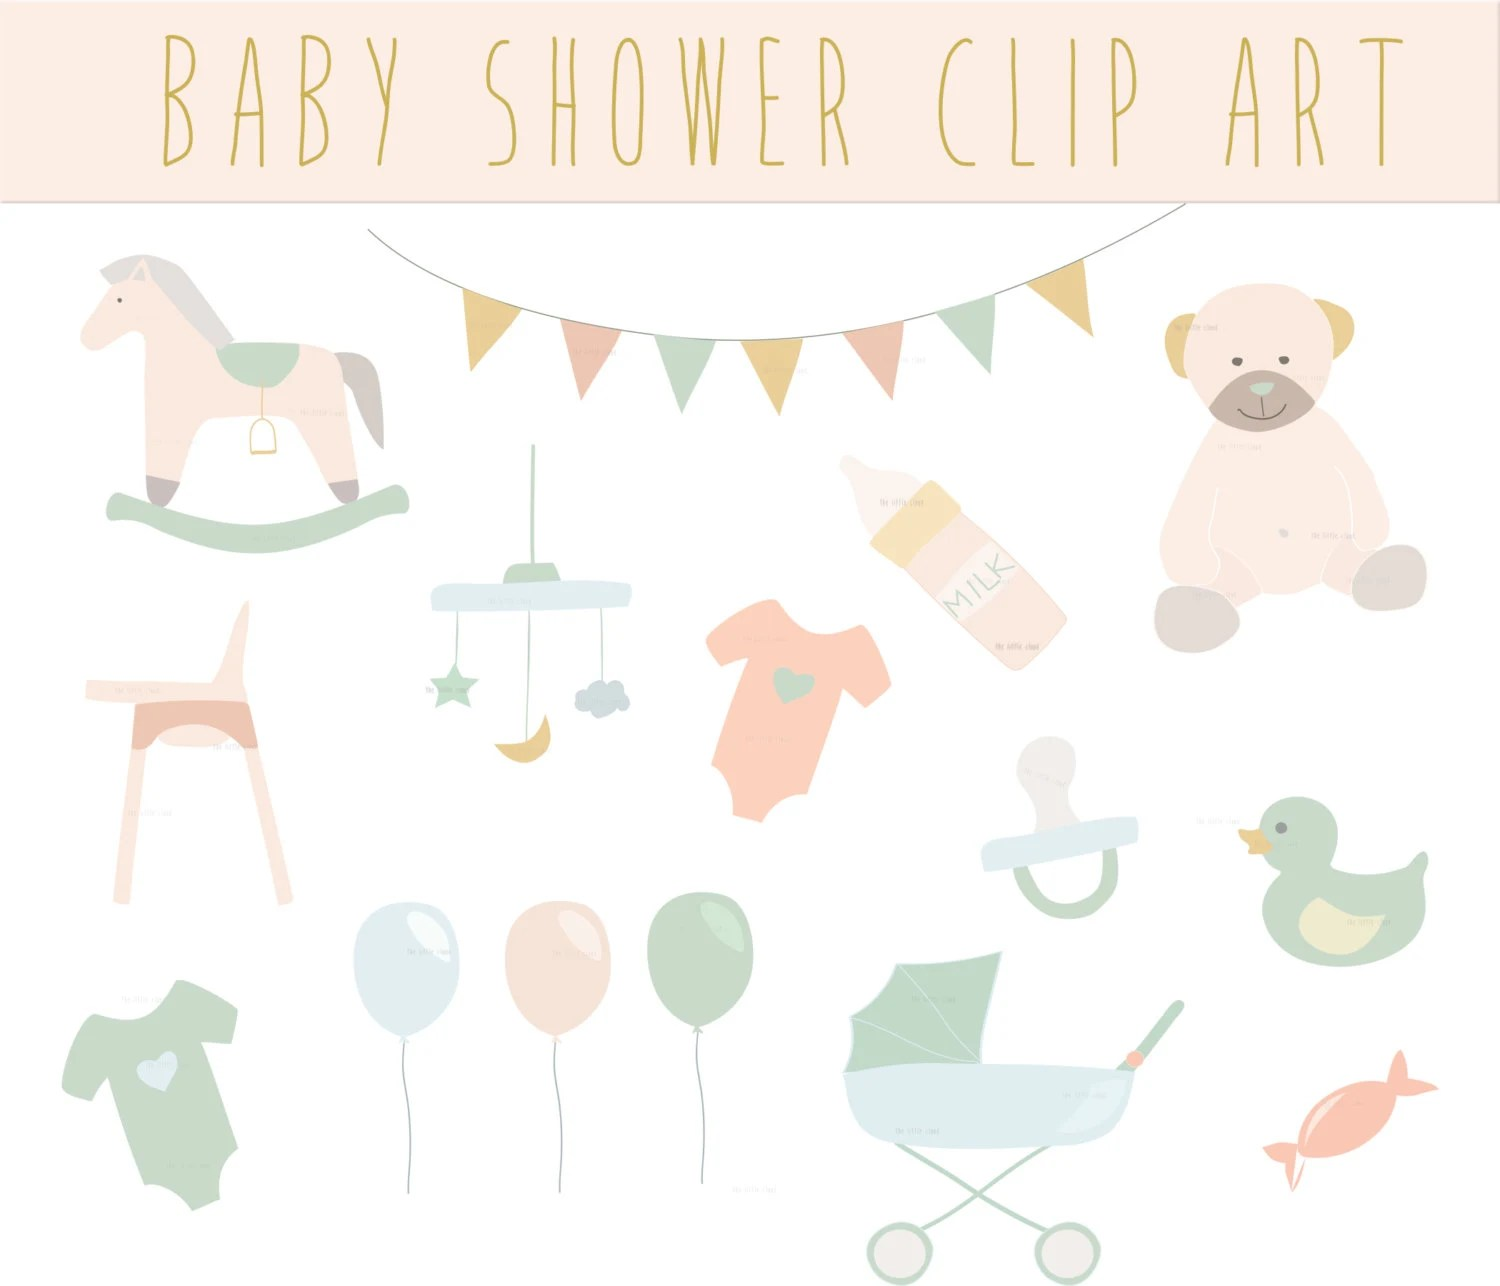 Rocking Chair Baby Bunting Baby Shower Clip Art Baby Clipart Cute Baby Shower Clipart